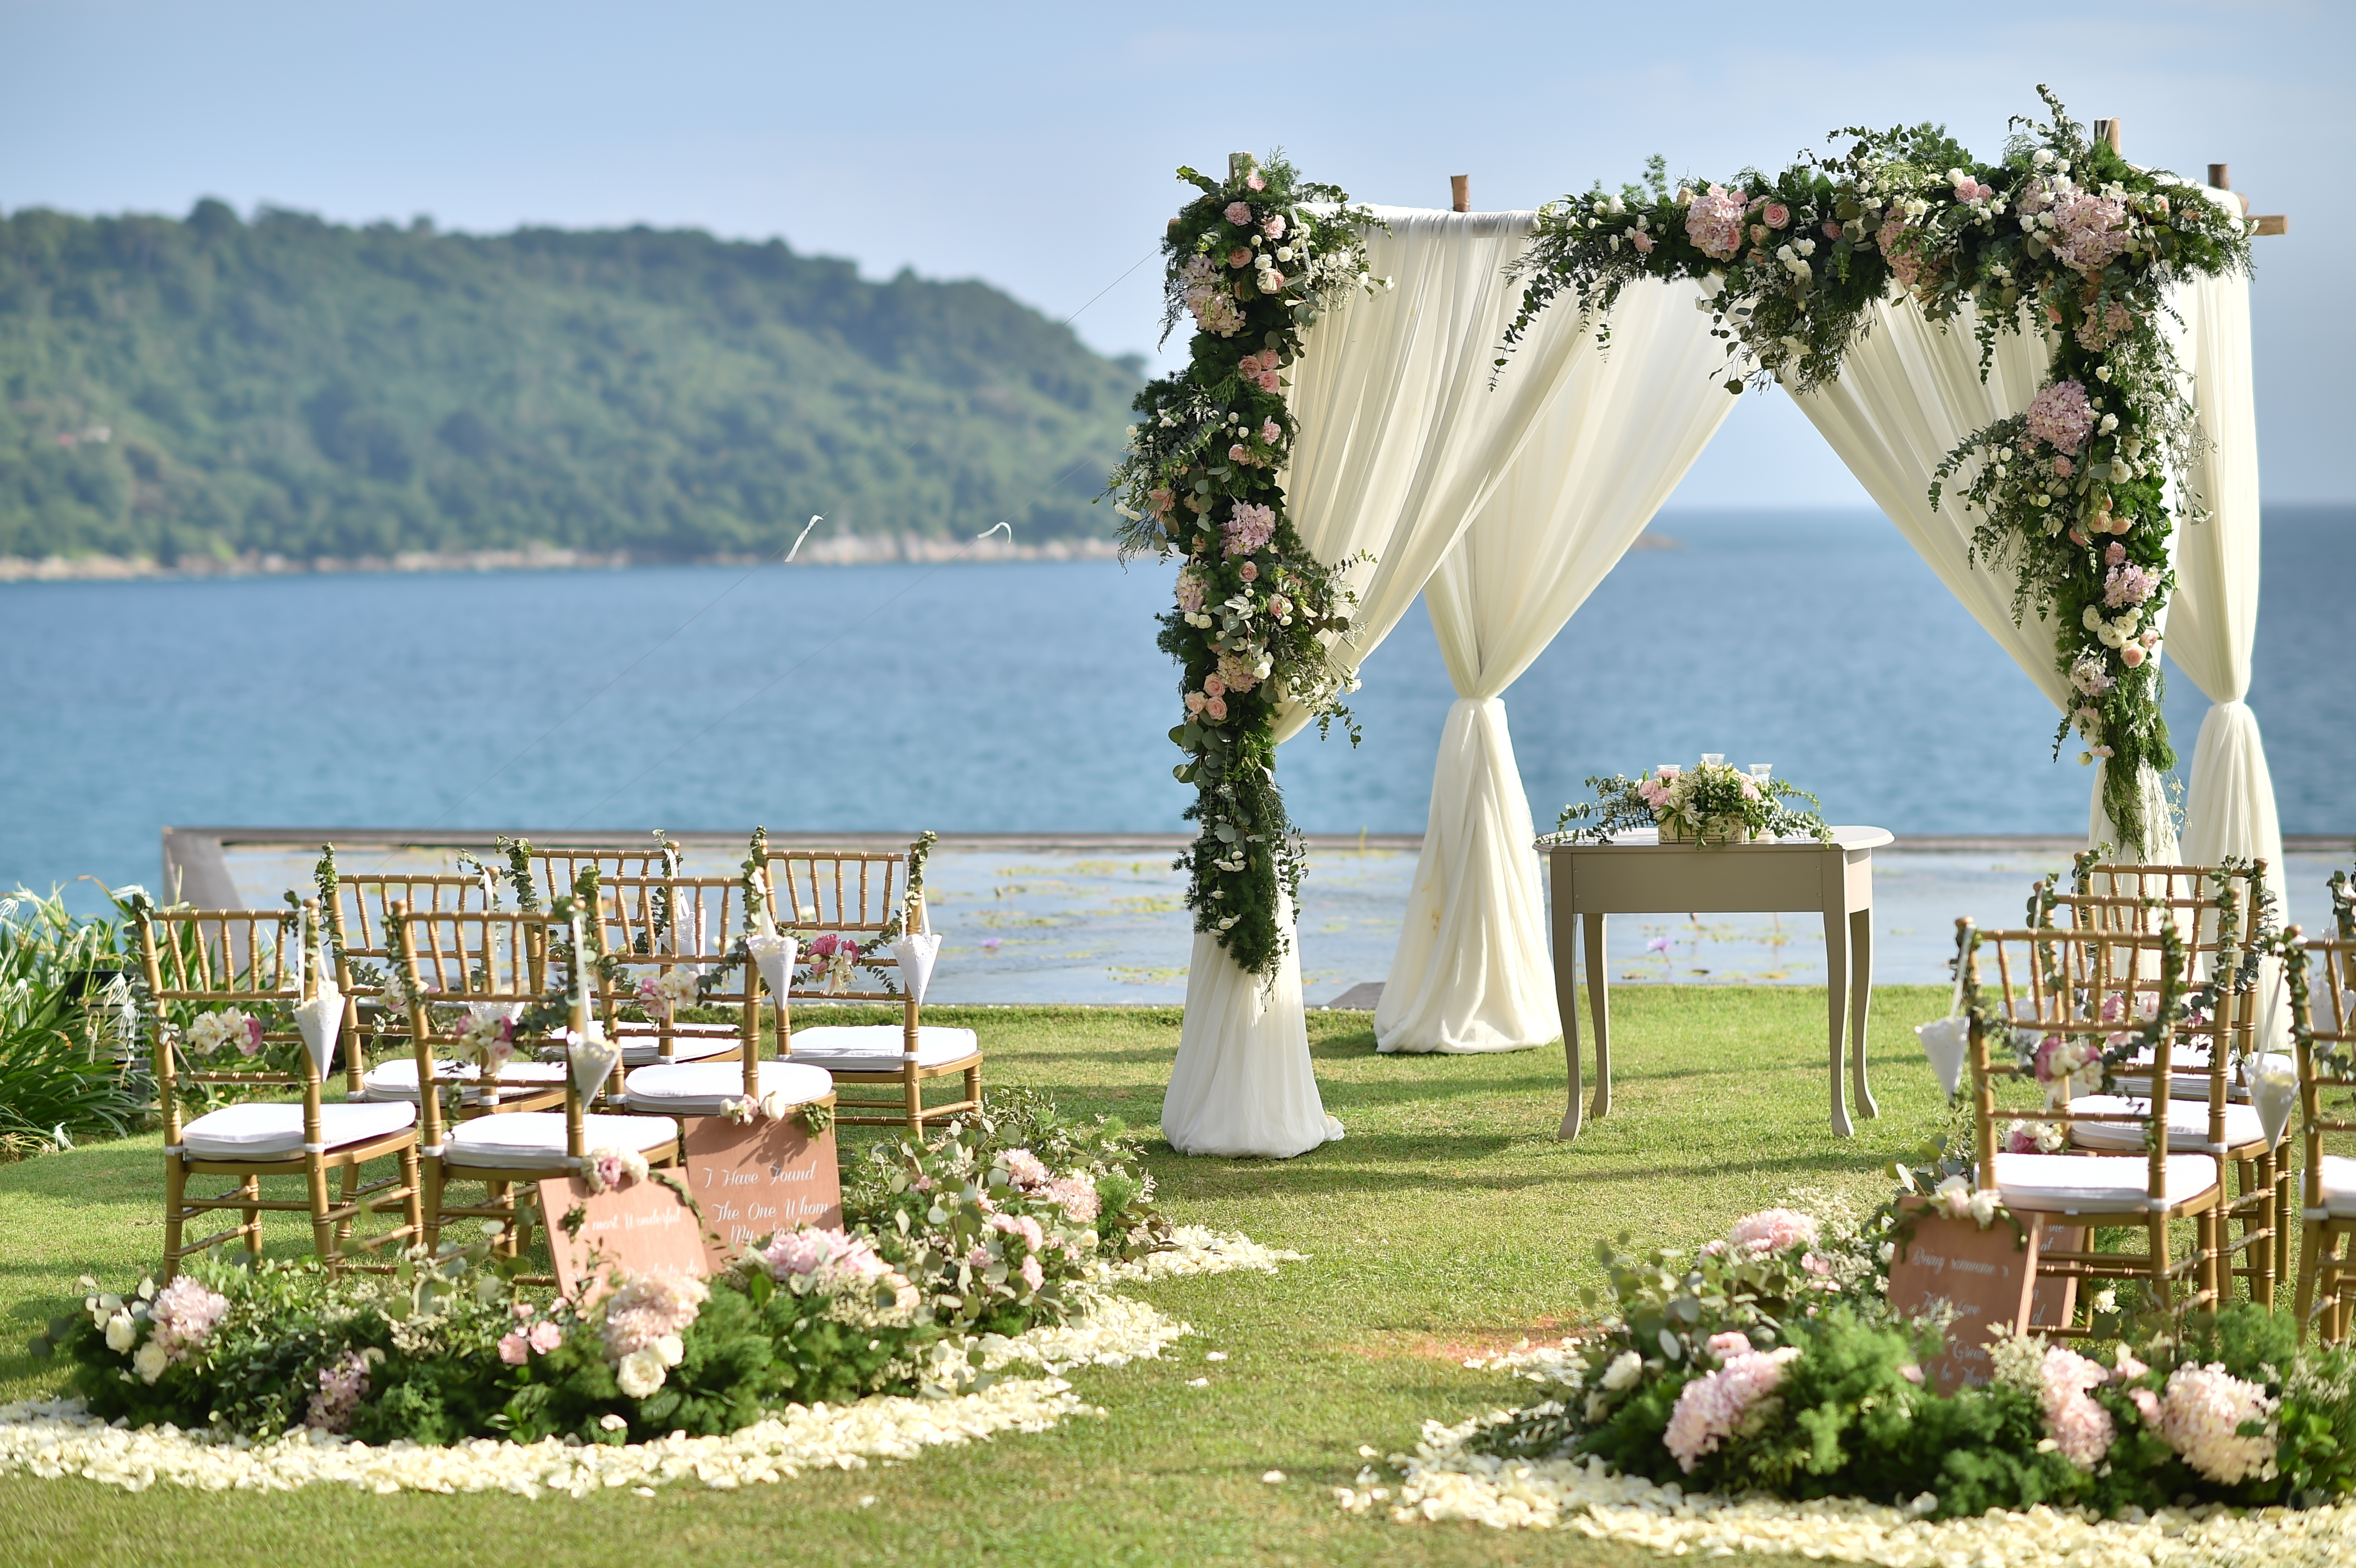 health safety market research outdoor wedding